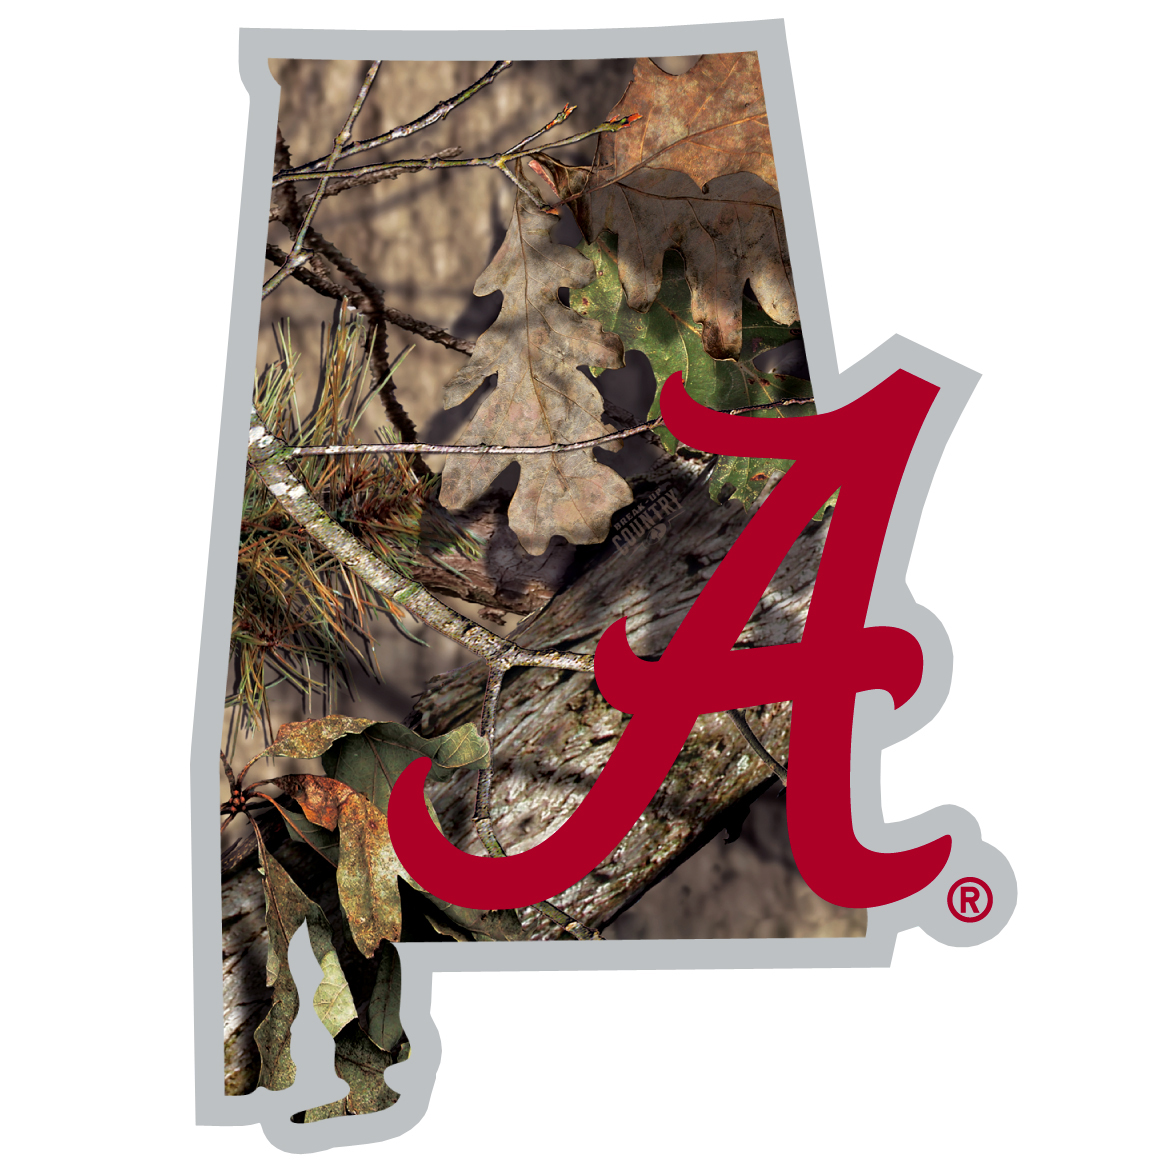 Alabama Crimson Tide State Decal w/Mossy Oak Camo - It's a home state decal with a sporty twist! This Alabama Crimson Tide decal features the team logo over a silhouette of the state in team colors and Mossy Oak camo and a helmet marking the home of the team. The decal is approximately 5 inches on repositionable vinyl.